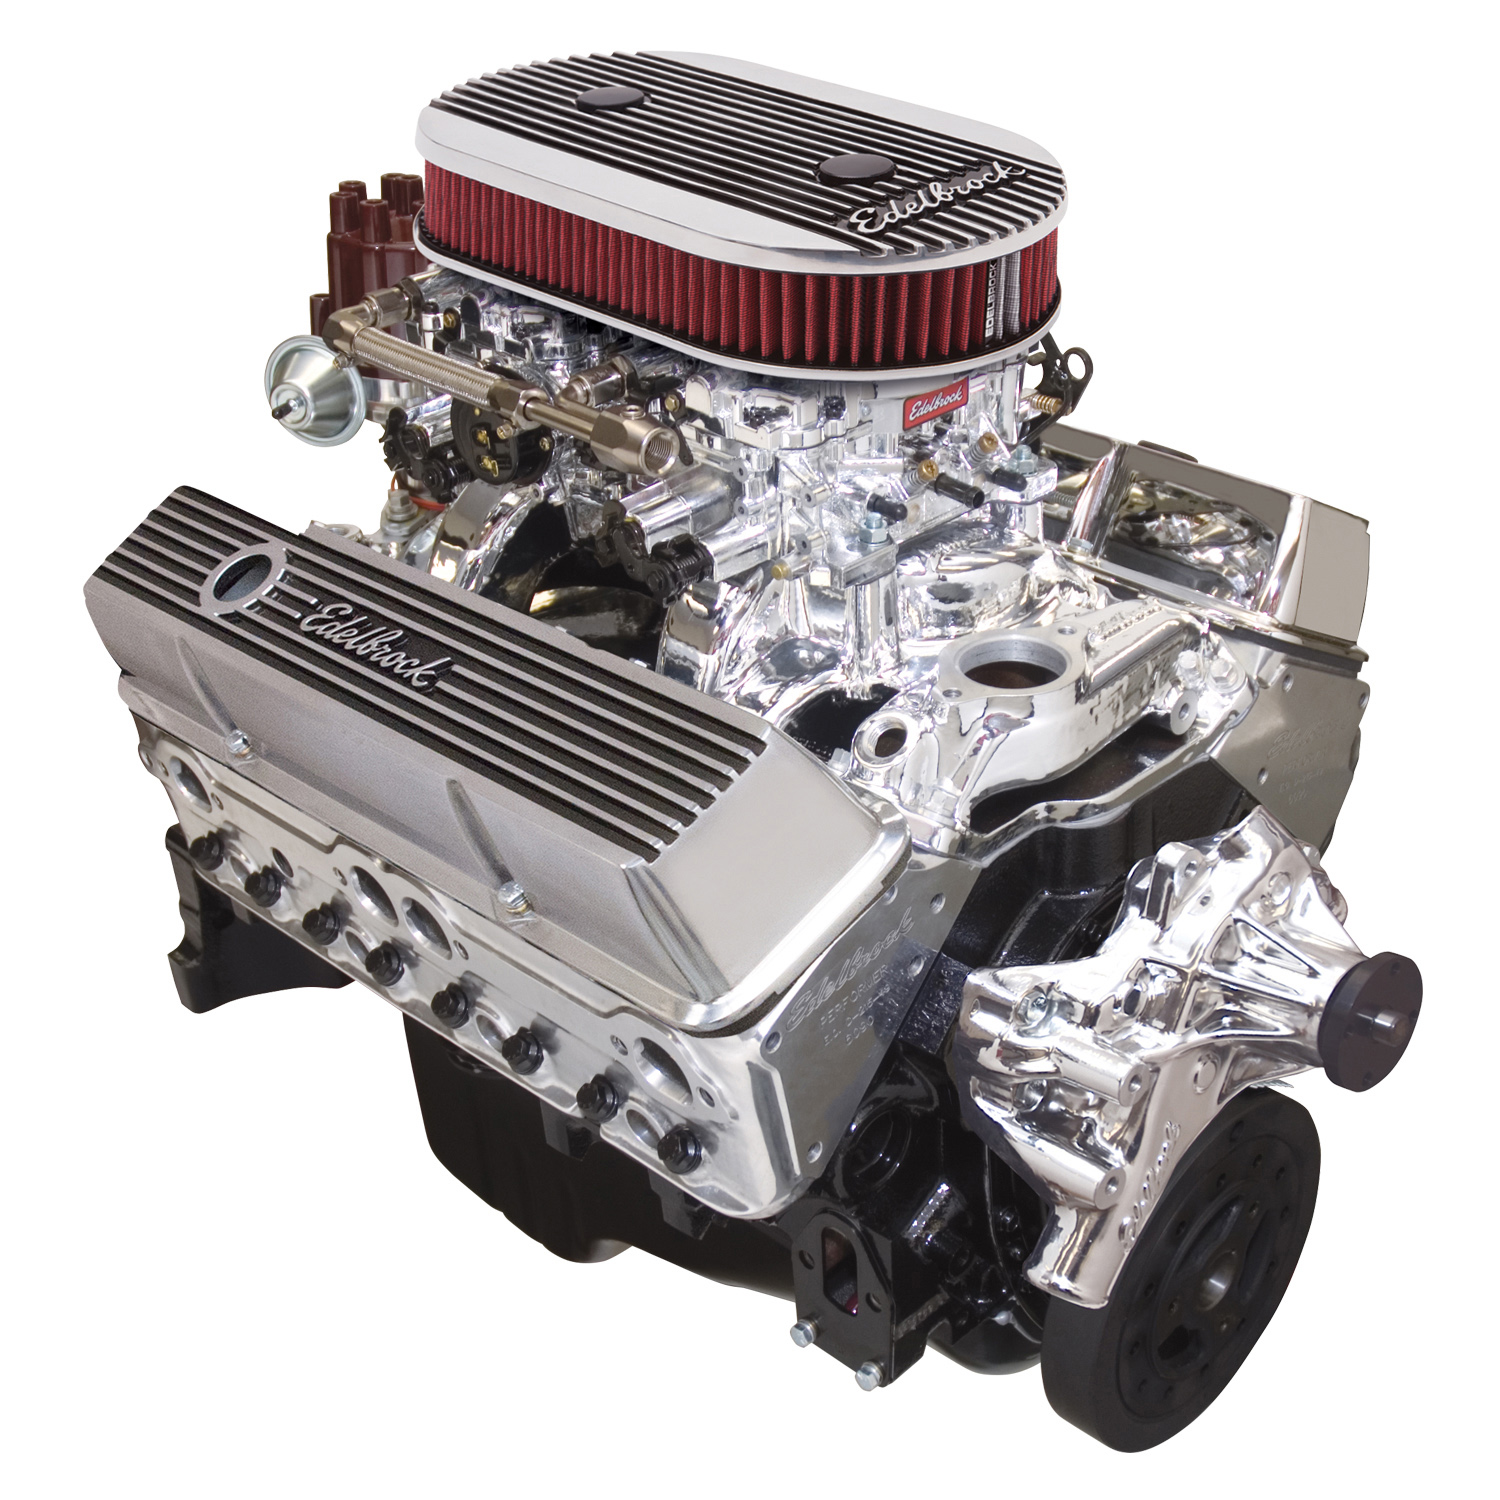 Edelbrock 45024 Performer Small Block Chevy Dual-Quad 315 Crate Engine Long  Water Pump Endura